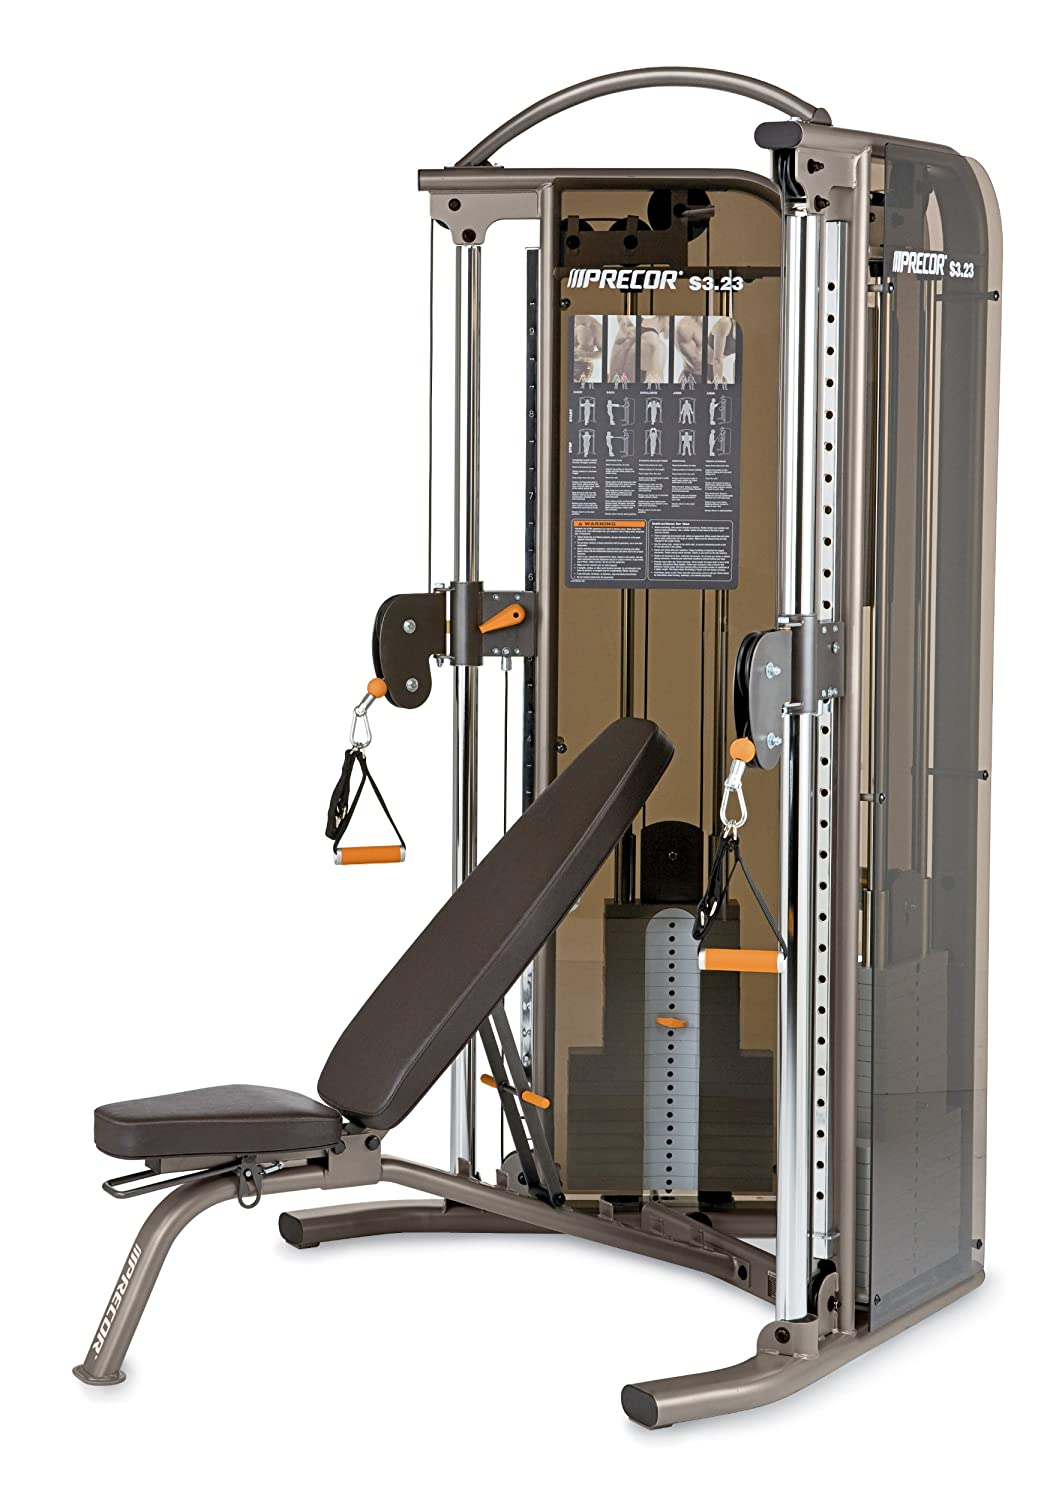 amazon com precor s3 23 functional trainer and bench combo dualamazon com precor s3 23 functional trainer and bench combo dual adjustable pulley sports \u0026 outdoors